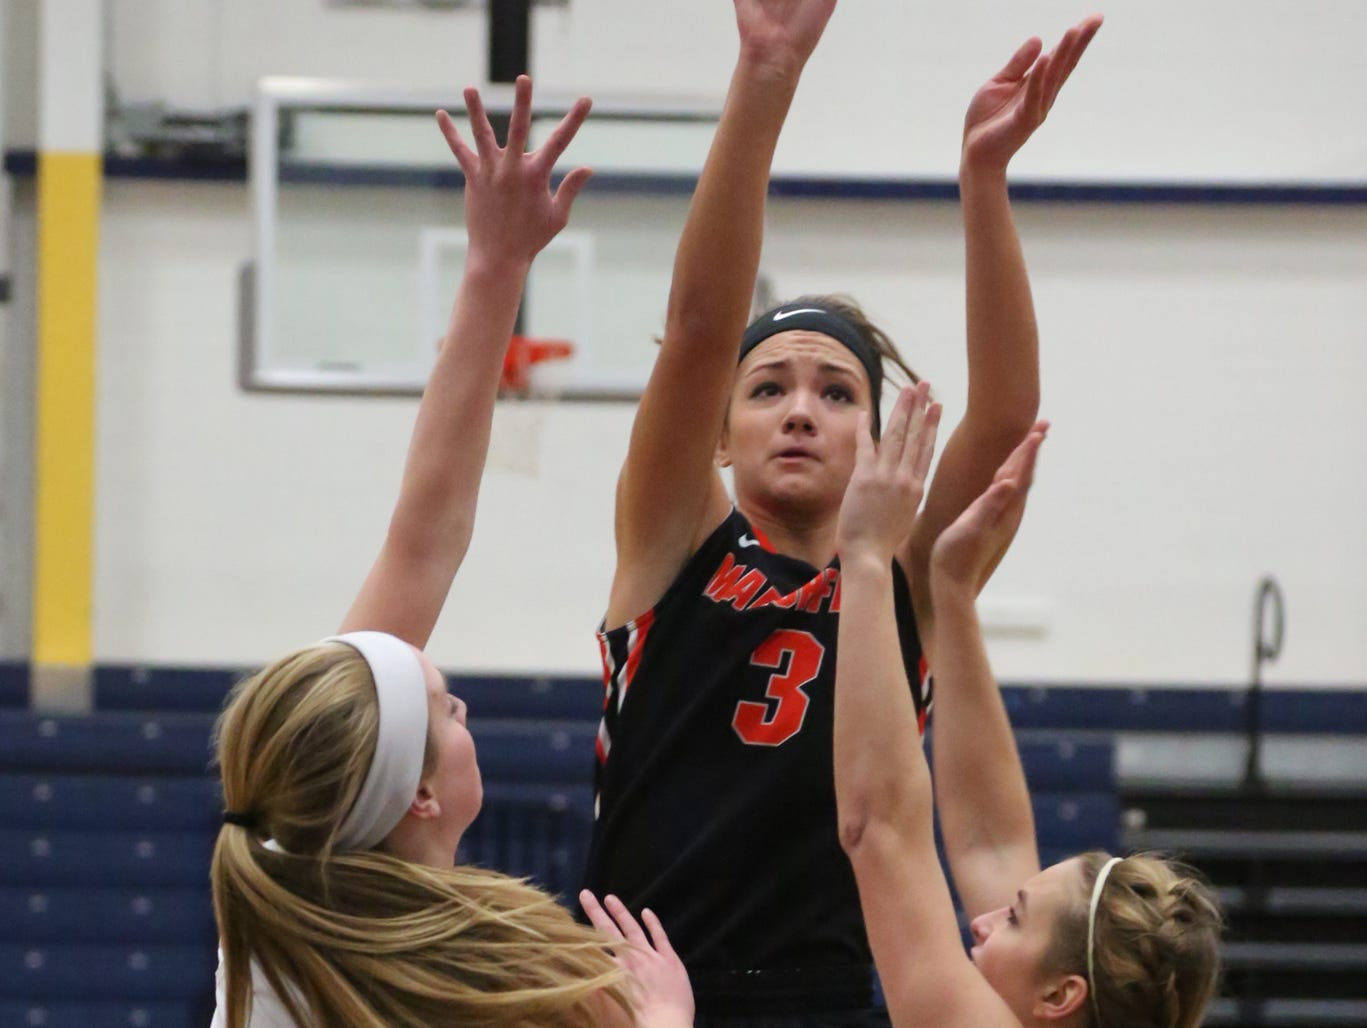 Marshfield's Caitlin Michaelis puts up a shot between two Wausau West players as the Tigers dominated the Warriors at West, Friday, December 5, 2014.